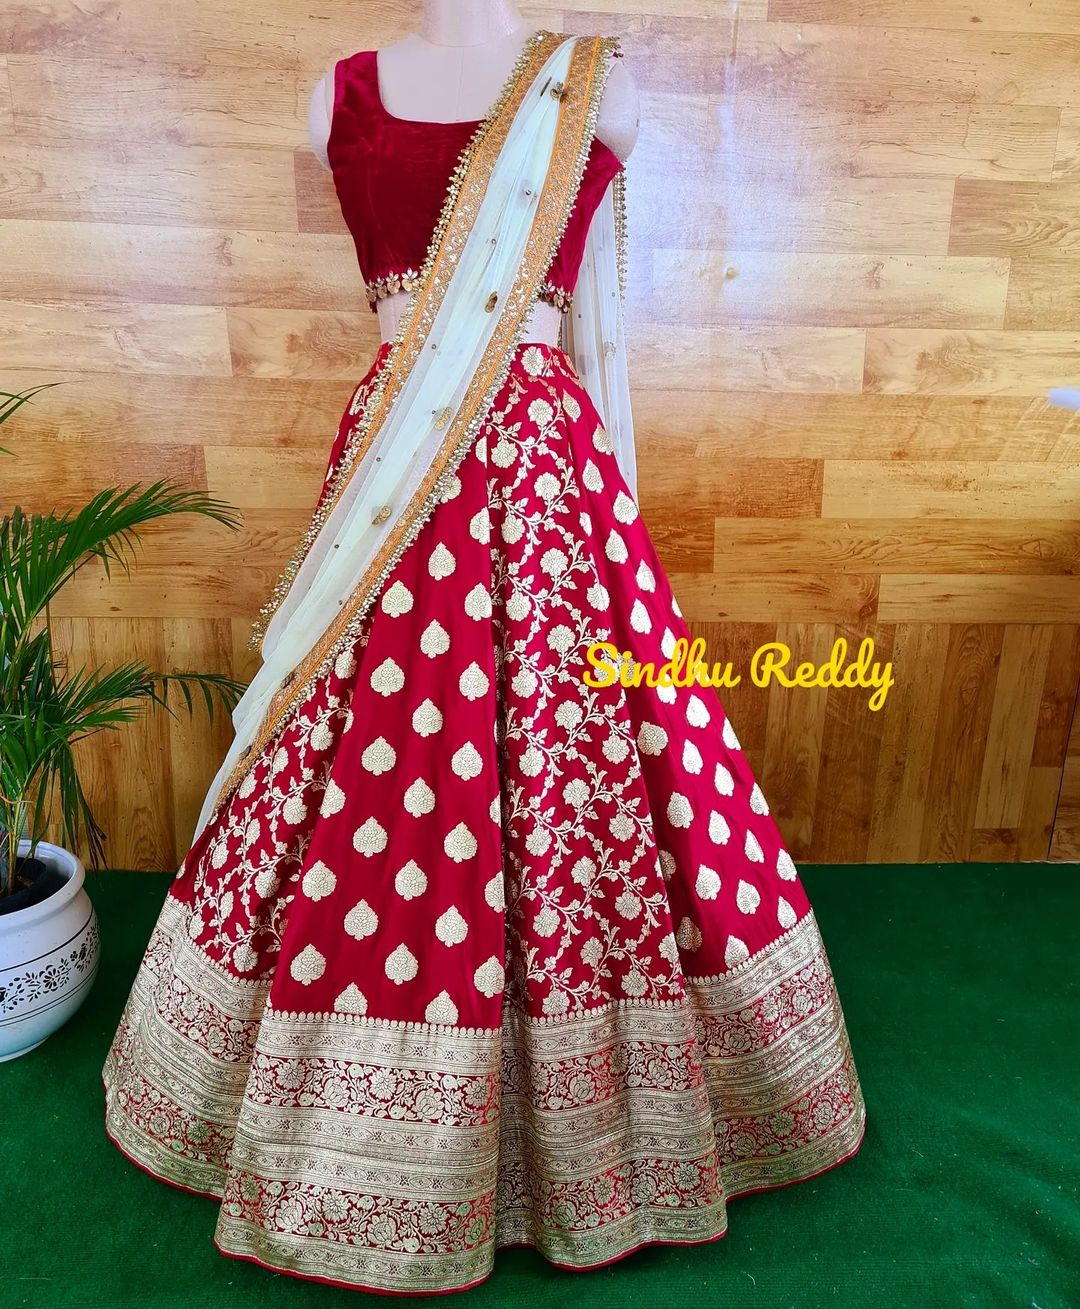 Magnificence of a Banarasi Lehenga  If you are enthusiastic about wearing a wedding Lehenga that is not heavy but rather still looks lofty  at that point a Banarasi silk Lehenga is your go-to decision!  2021-08-07